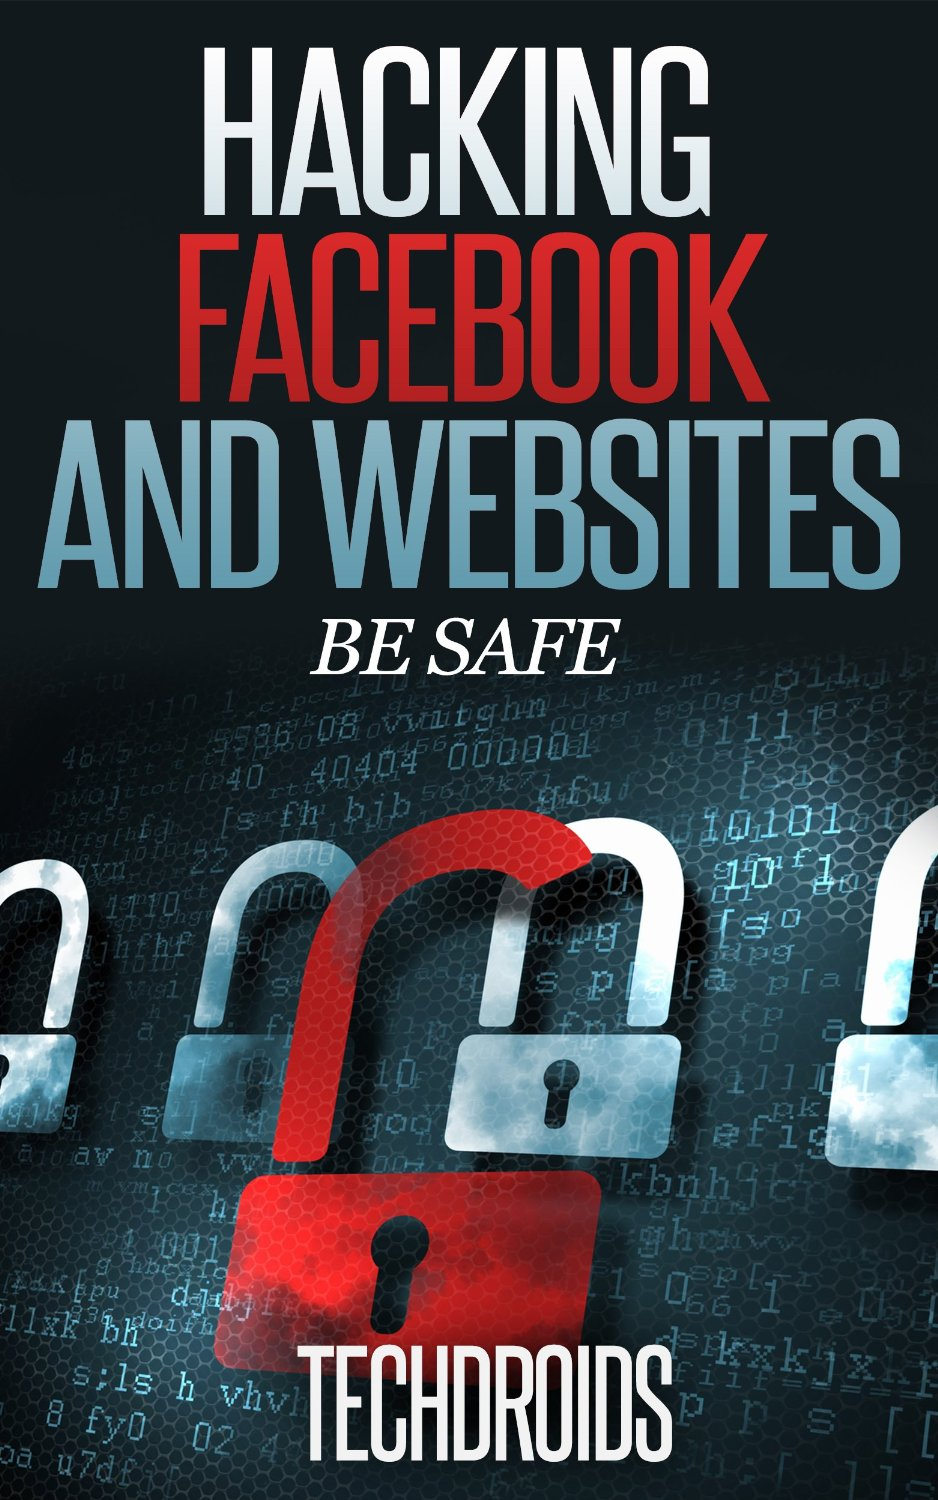 Facebook and Website Hacking - Be Safe free download